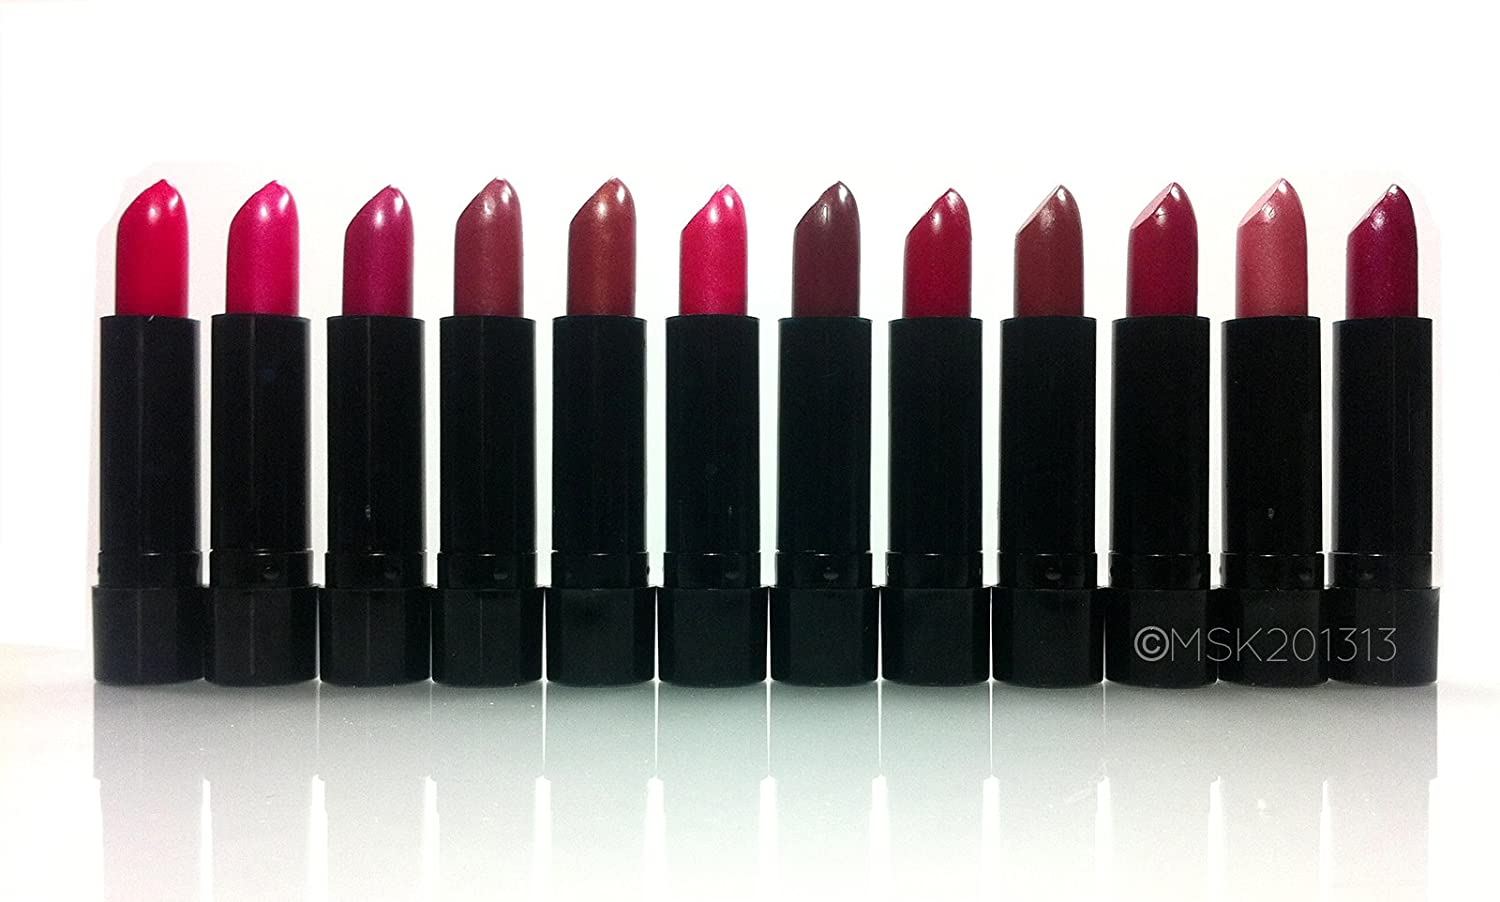 Princessa-Aloe-Lipsticks-Set-12-Fashionable-Colors-Long-Lasting